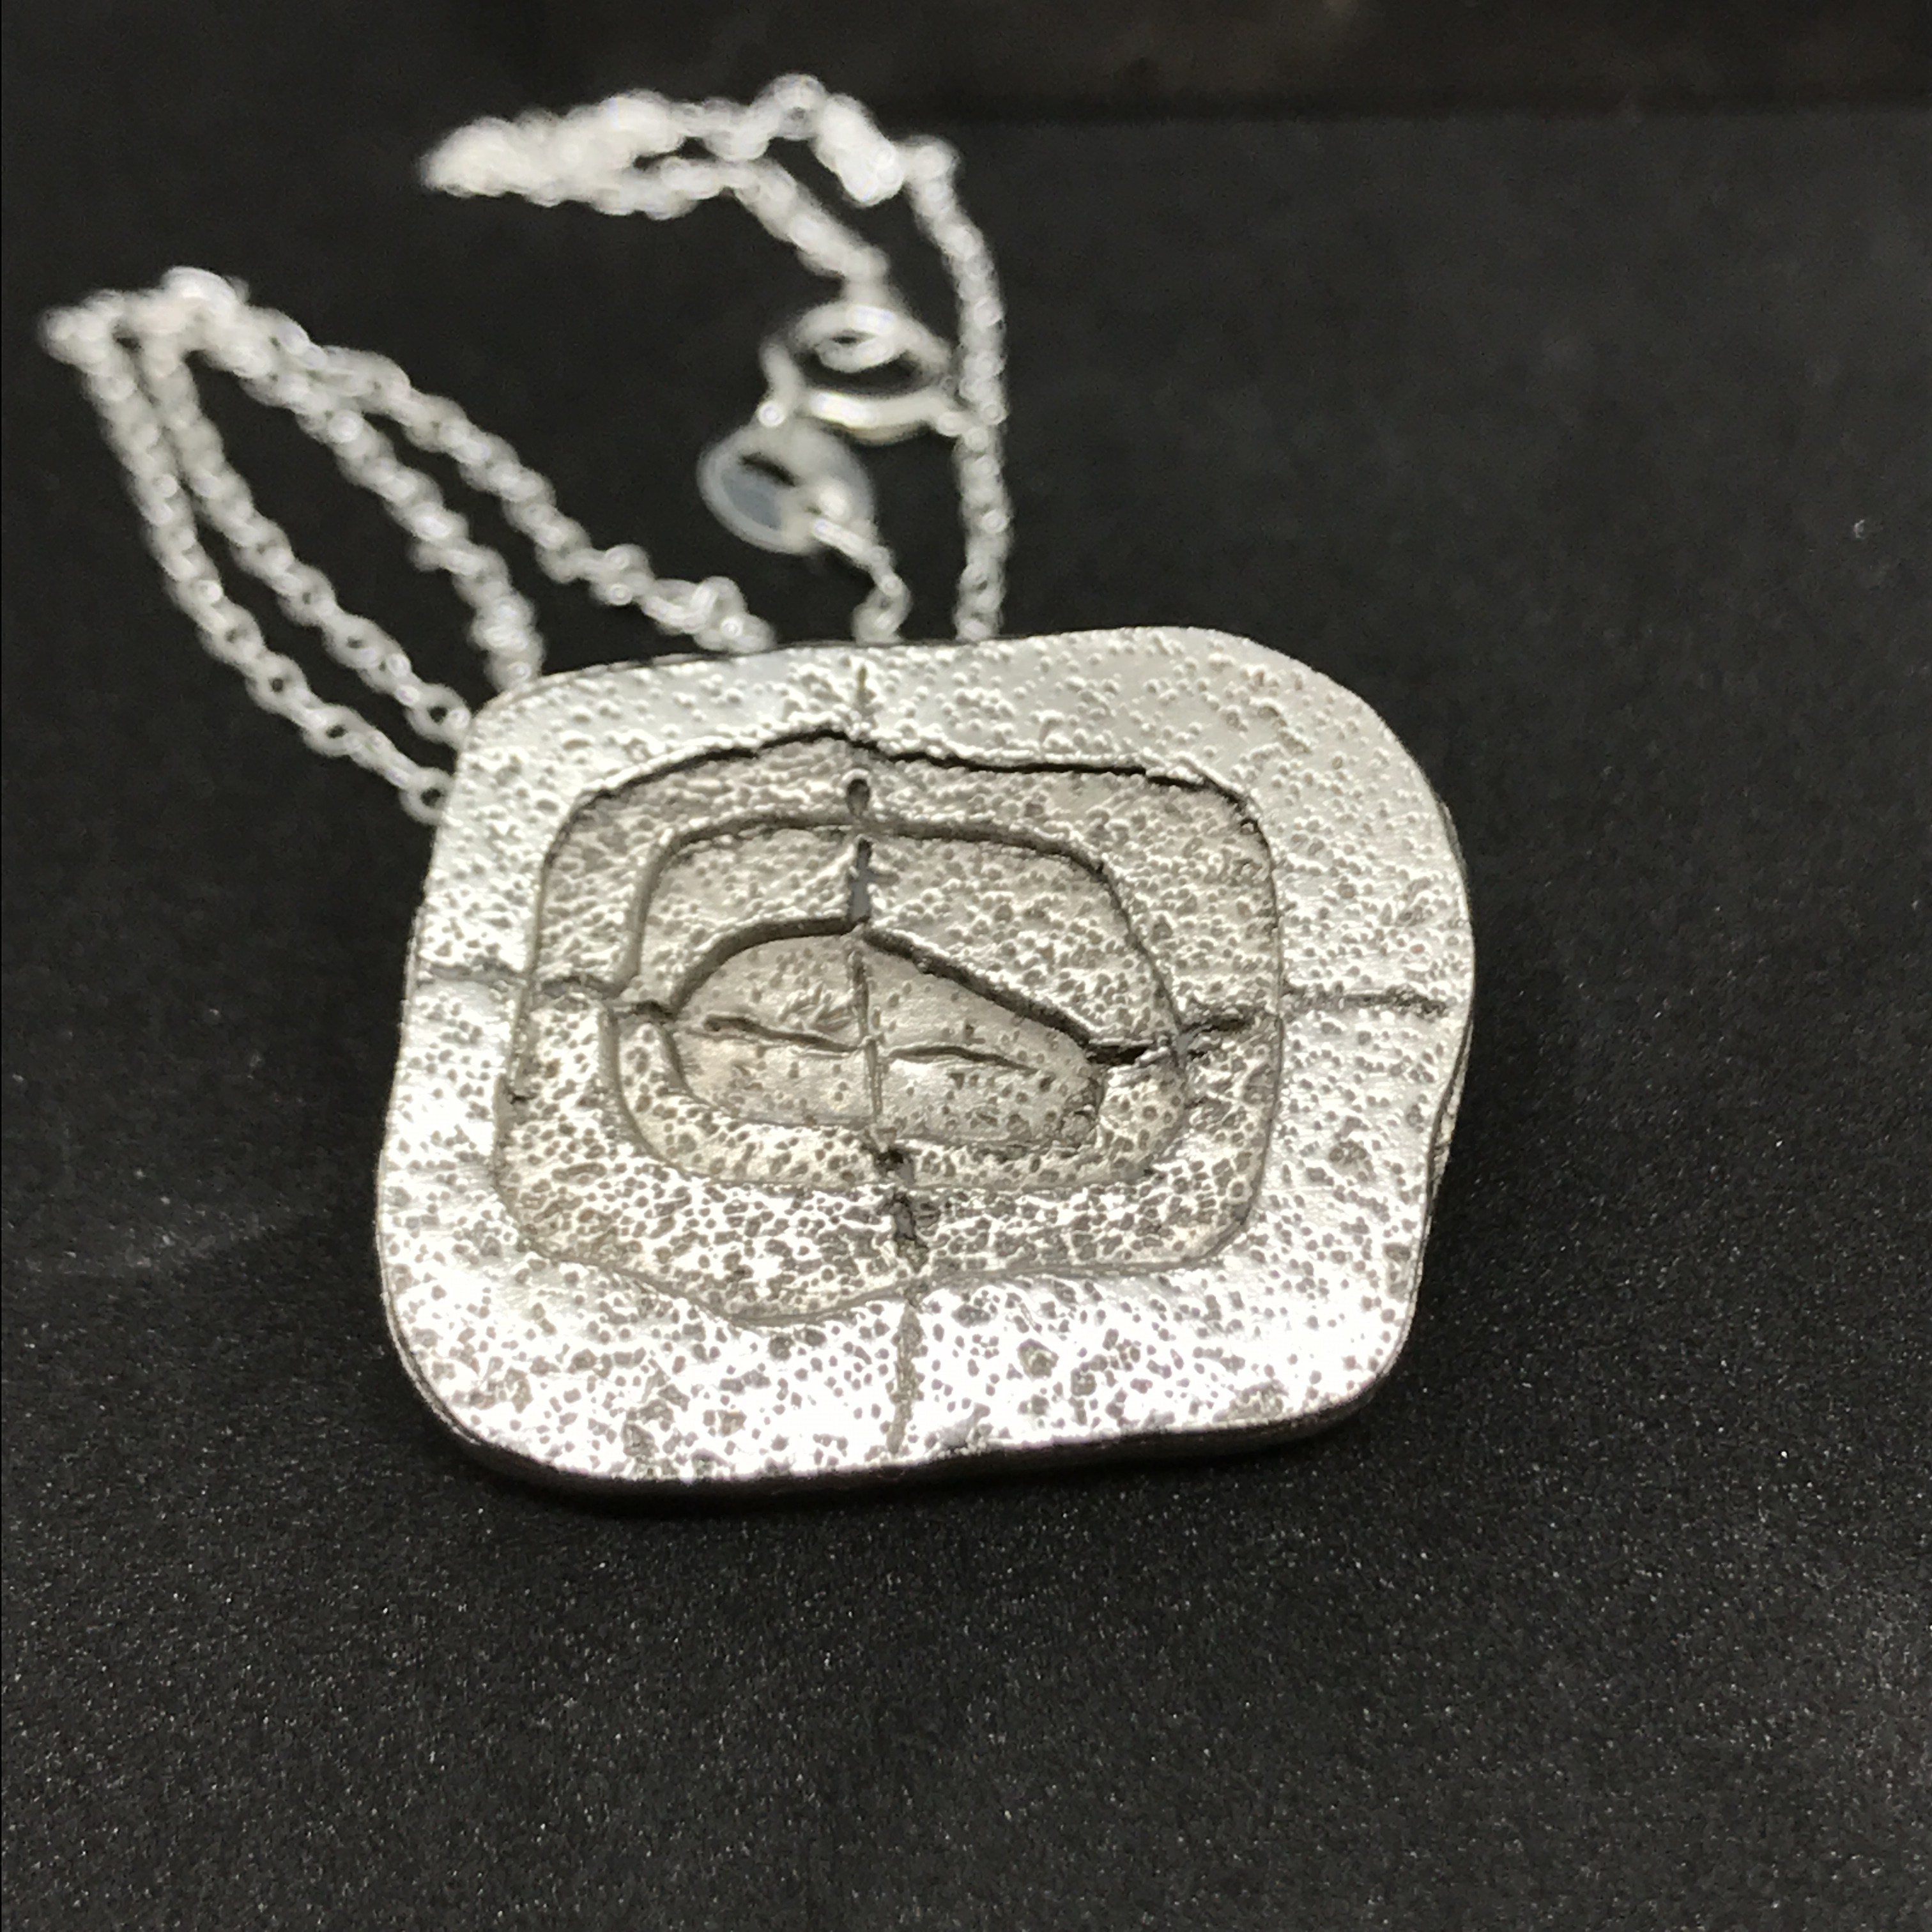 Cracked - Limited Edition. Architectural fine silver pendant with sterling silver chain. £45 +post and packaging. Click here to purchase.